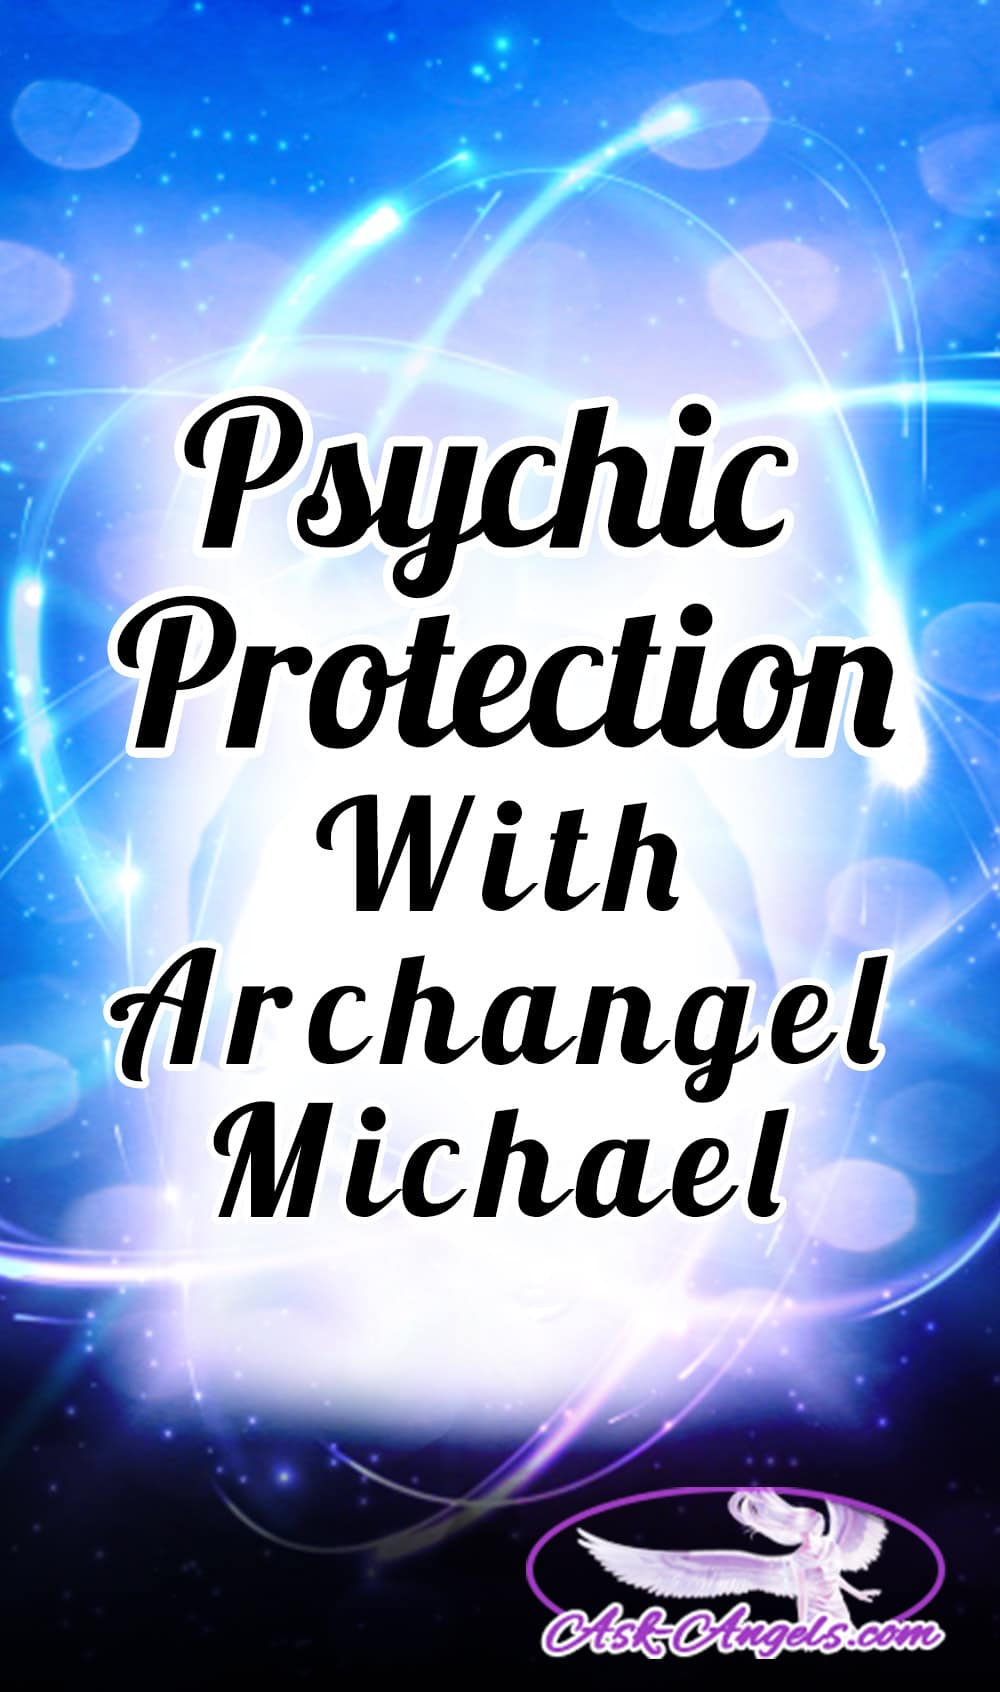 Psychic Protection with Archangel Michael